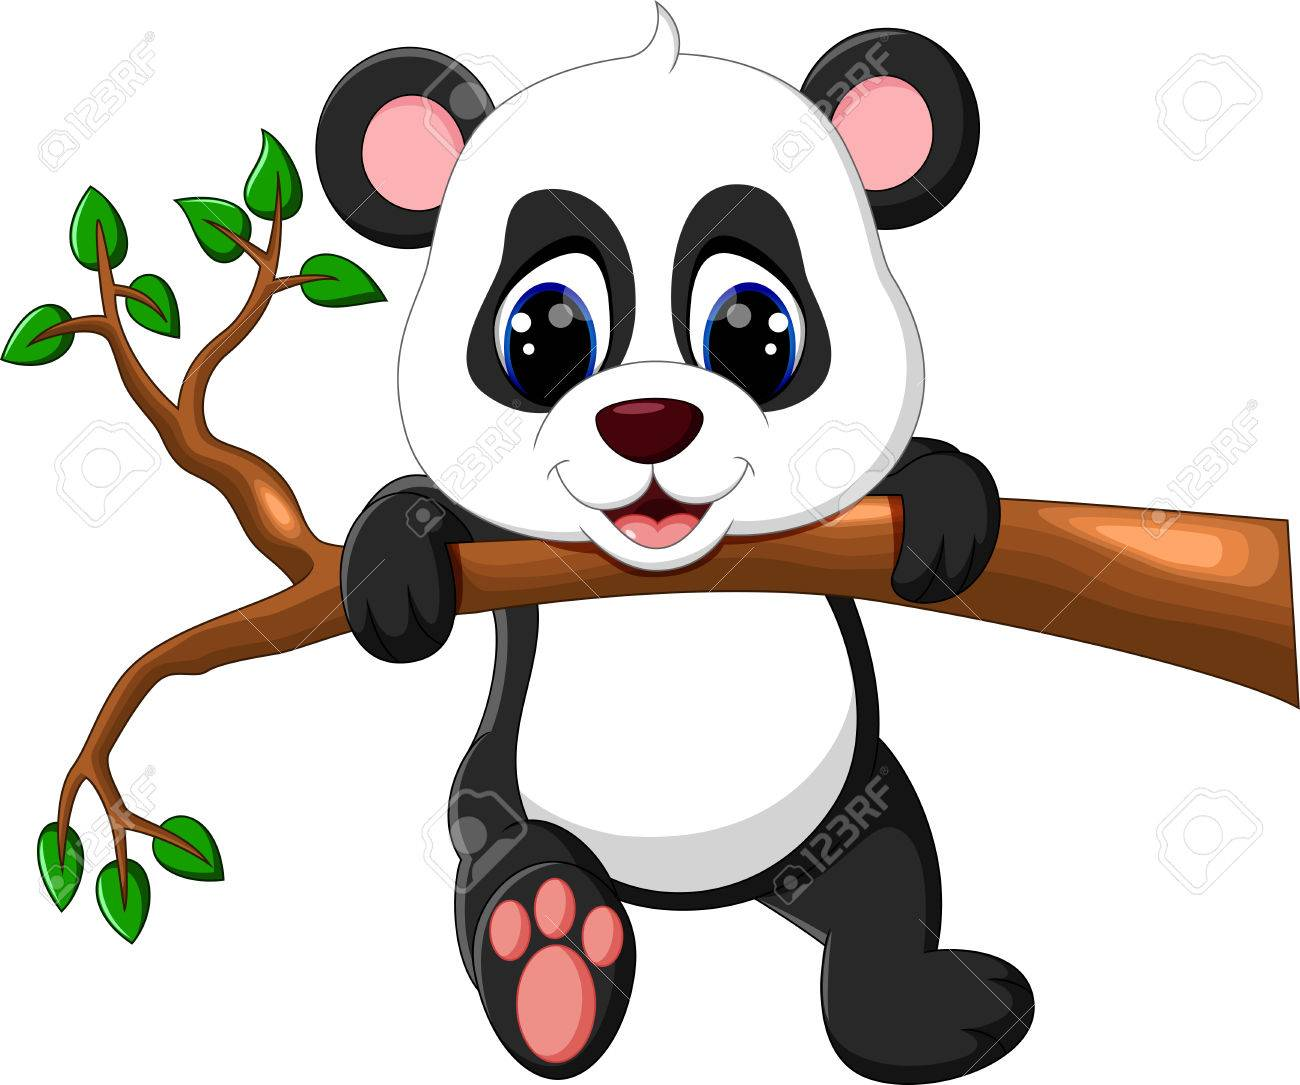 Cute Baby Panda Cartoon Stock Photo Picture And Royalty Free Image Image 60994577